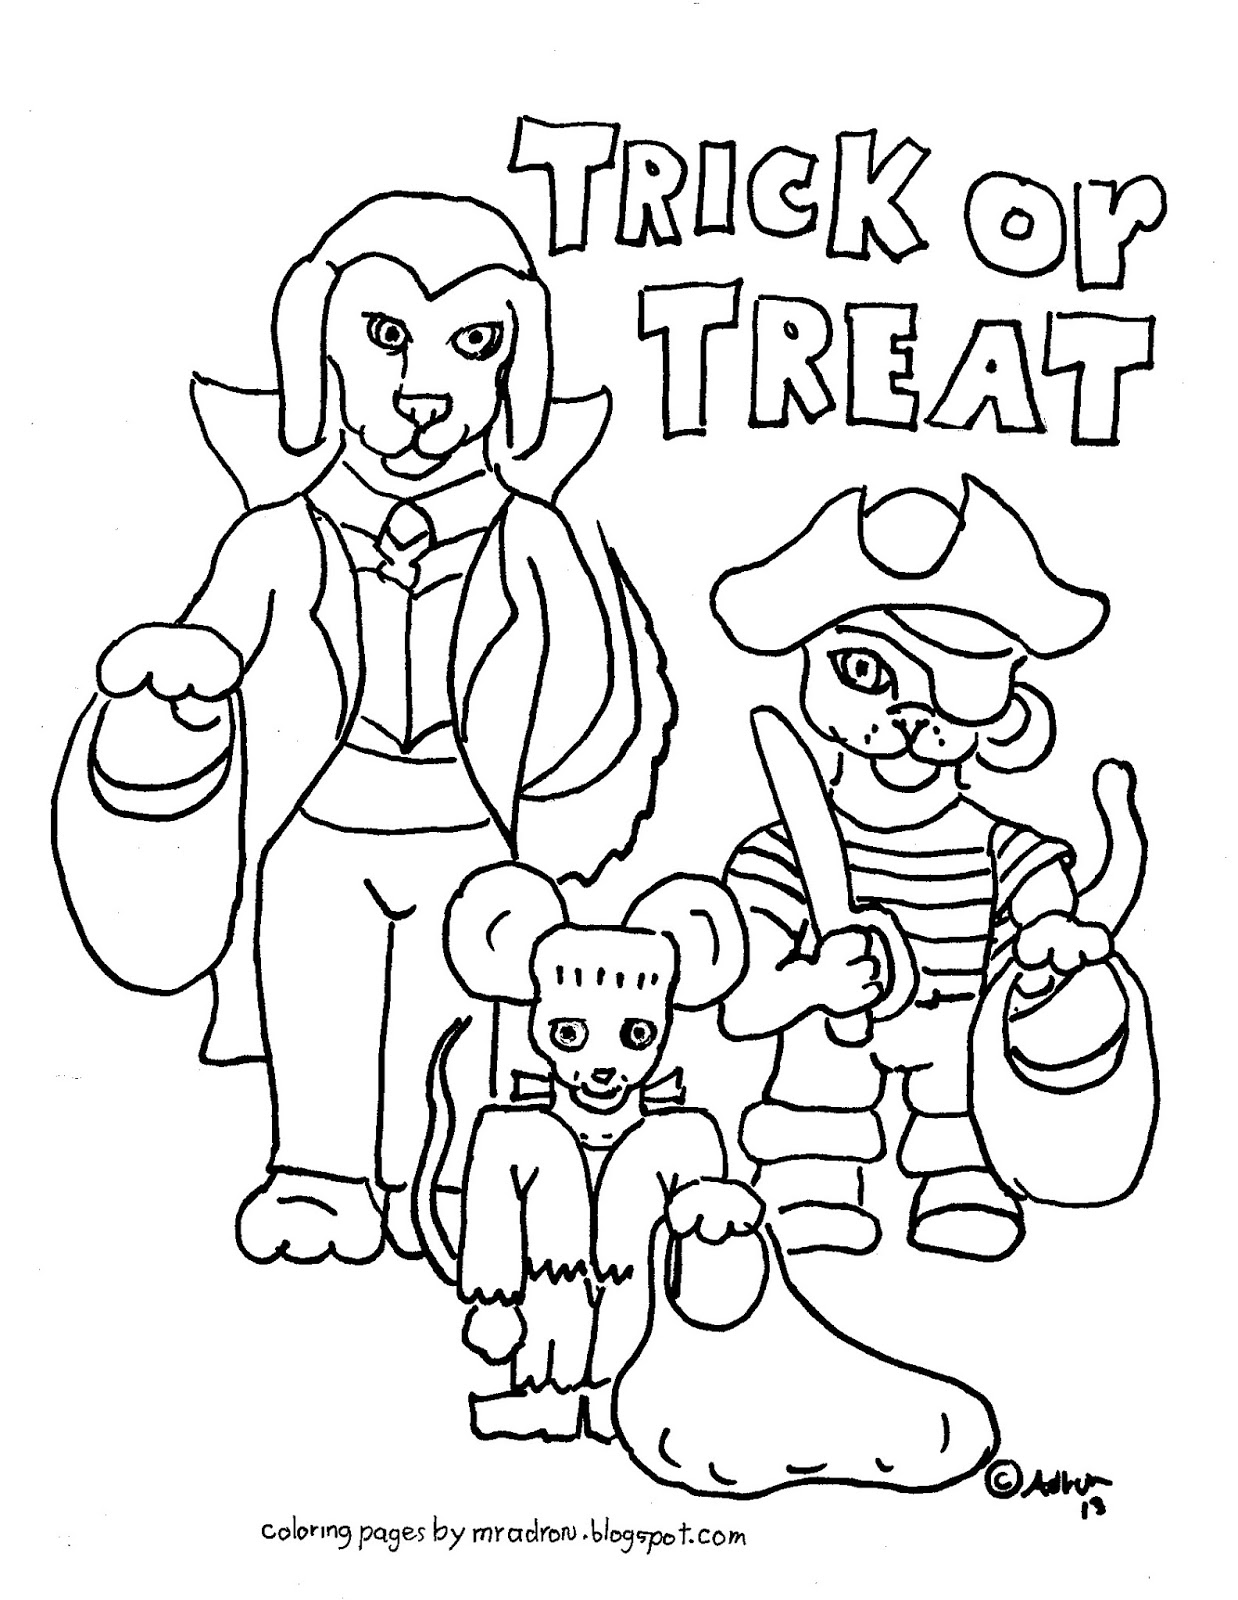 Coloring Pages for Kids by Mr. Adron: Free Trick or Treat Coloring Page